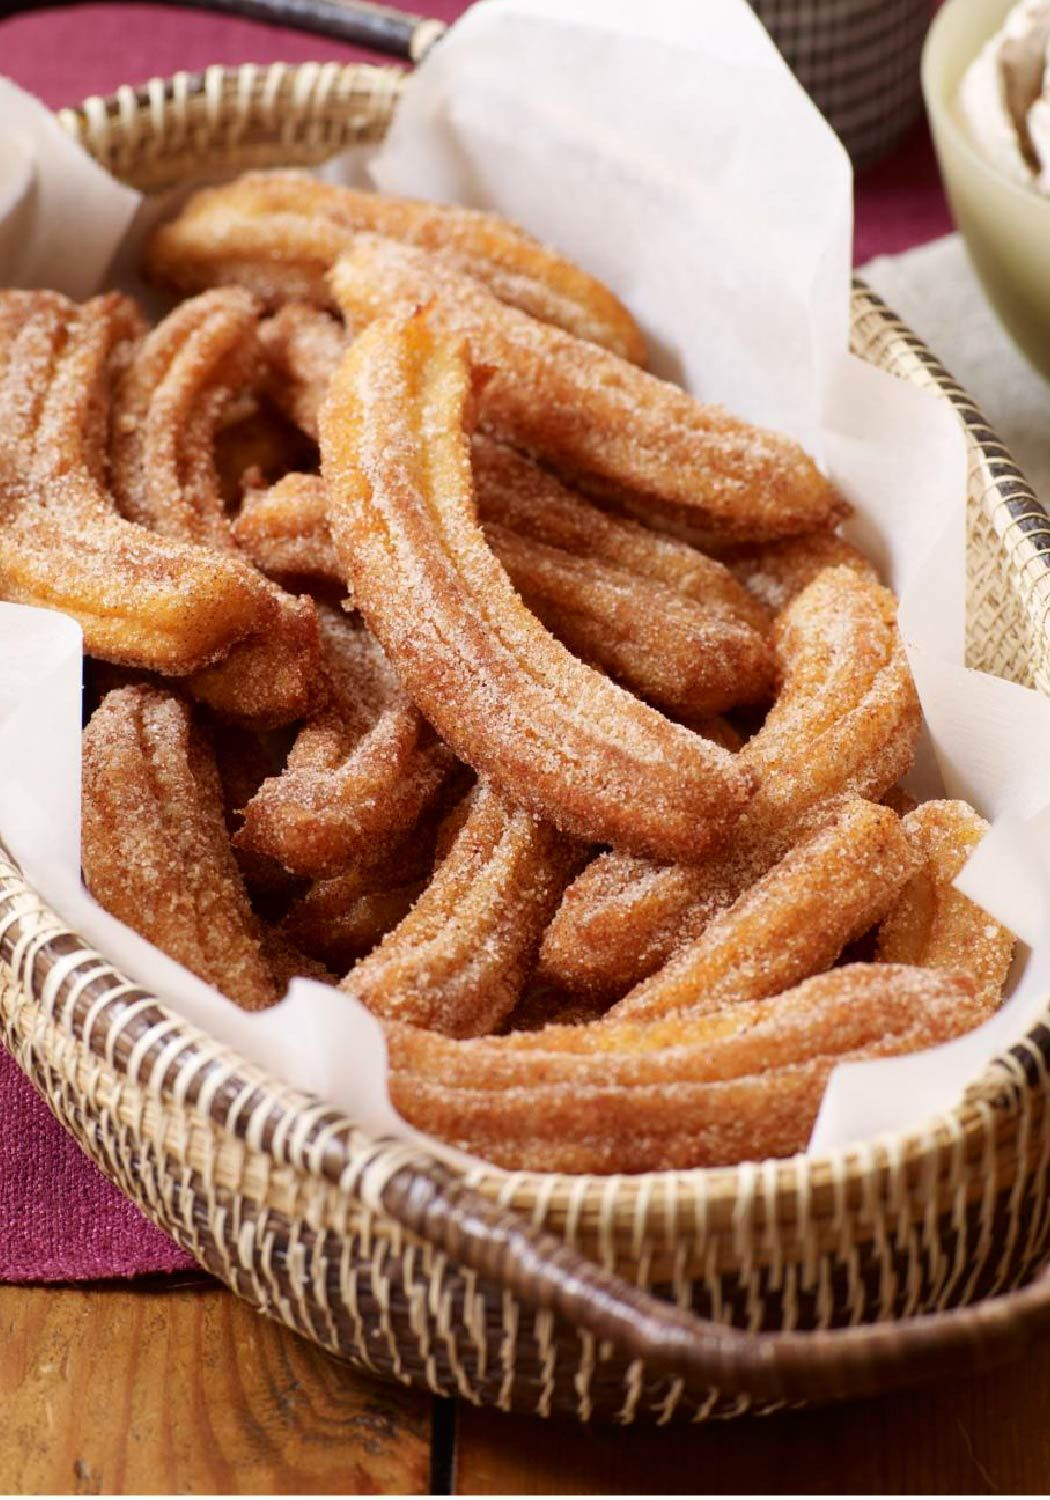 Cinnamon churros our cinnamon churros recipe is the real deal and our cinnamon churros recipe is the real deal and the cooking video shows how easy it is to make this mexican street food fave forumfinder Images